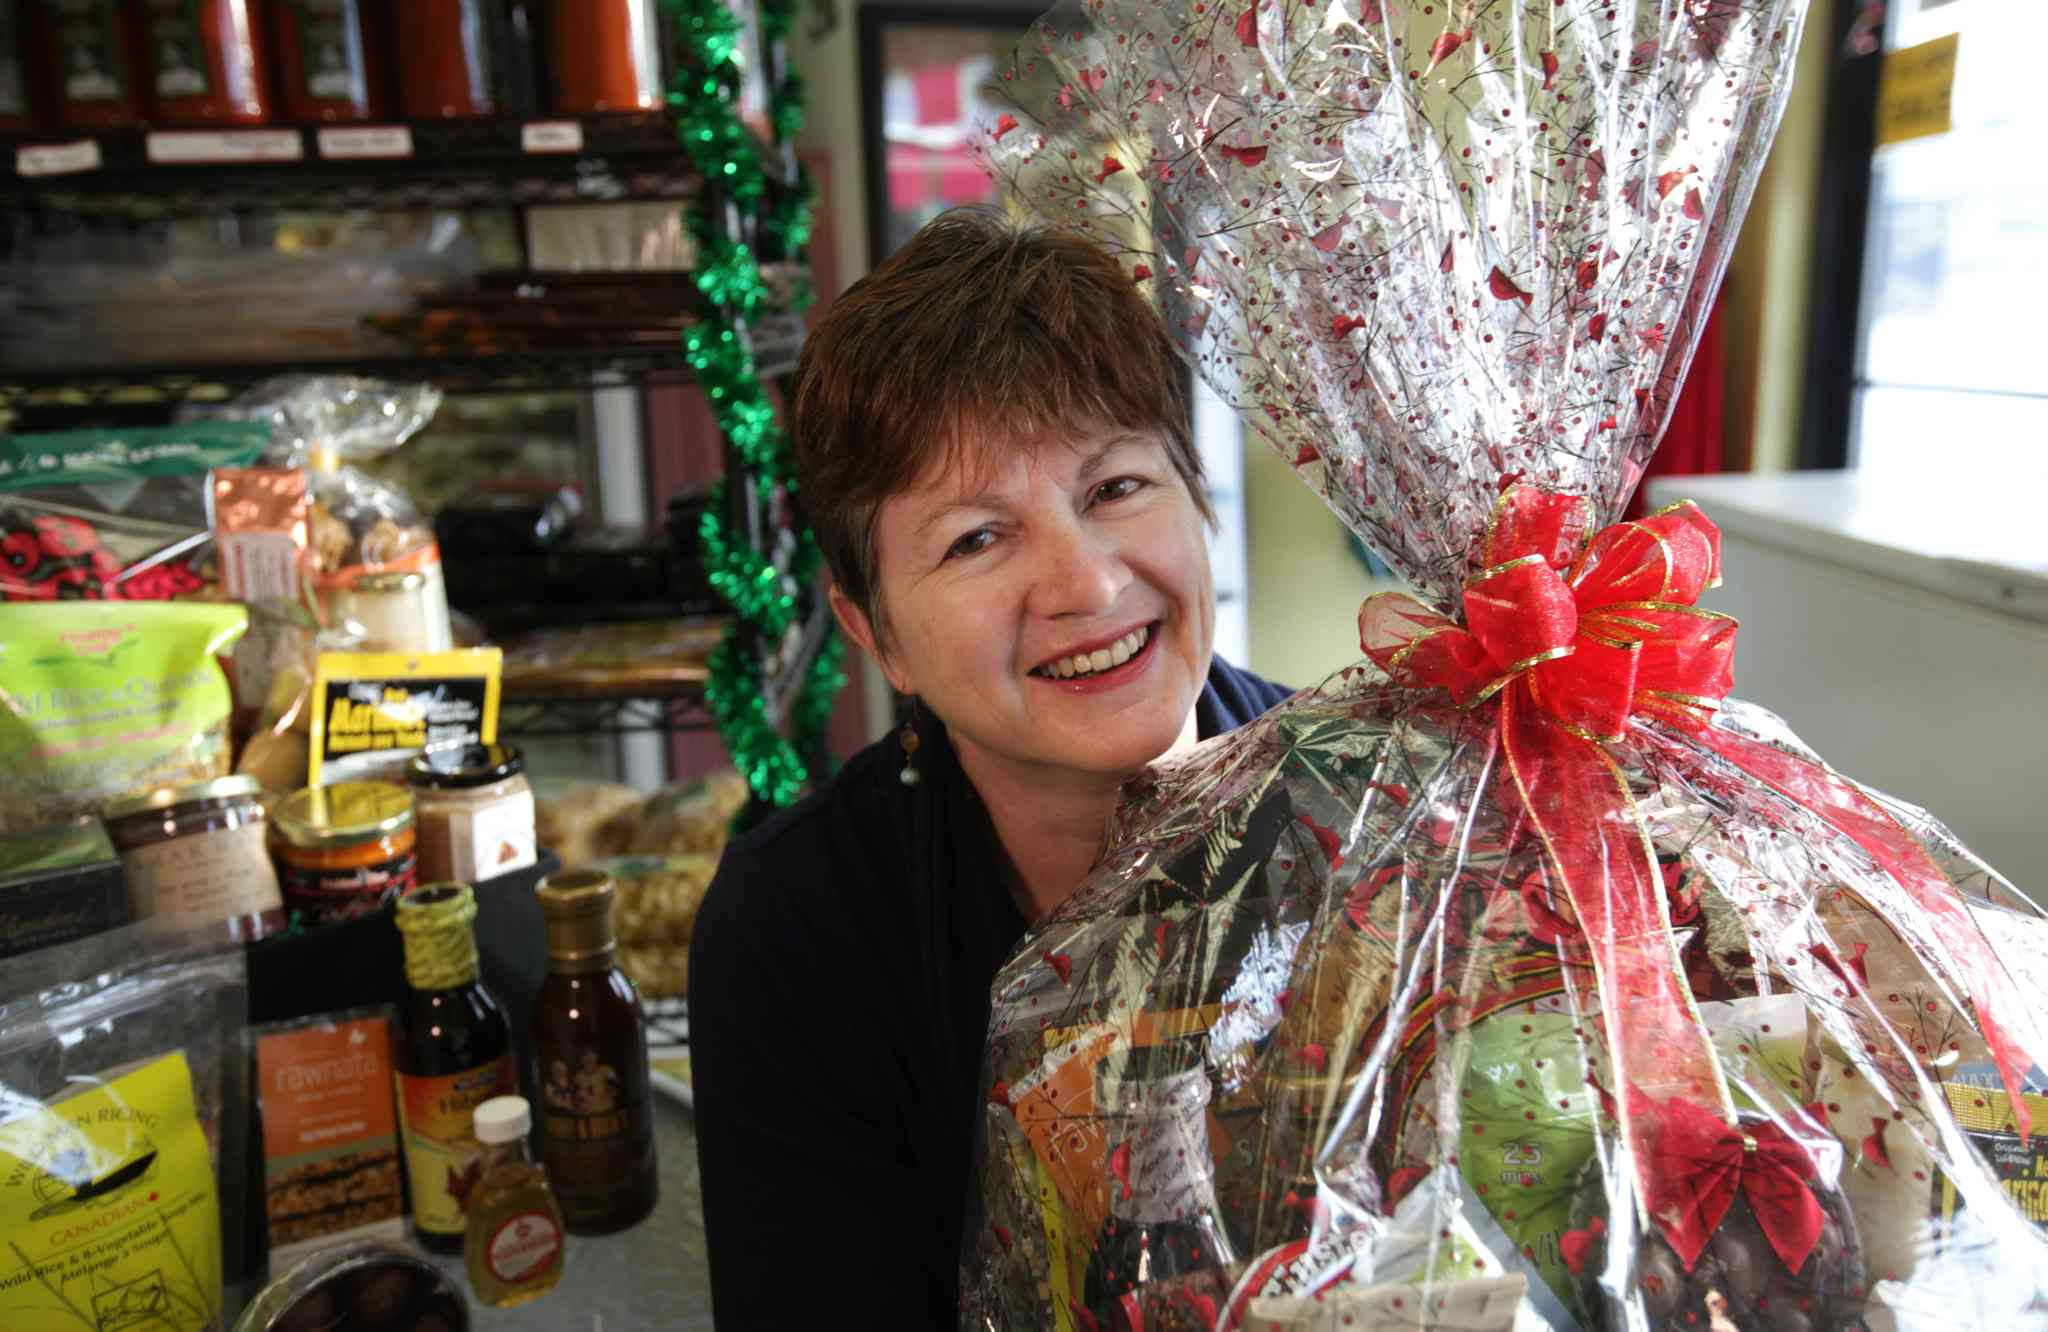 Carla Dayholos assembles made-in-Manitoba gift baskets filled with locally made products through